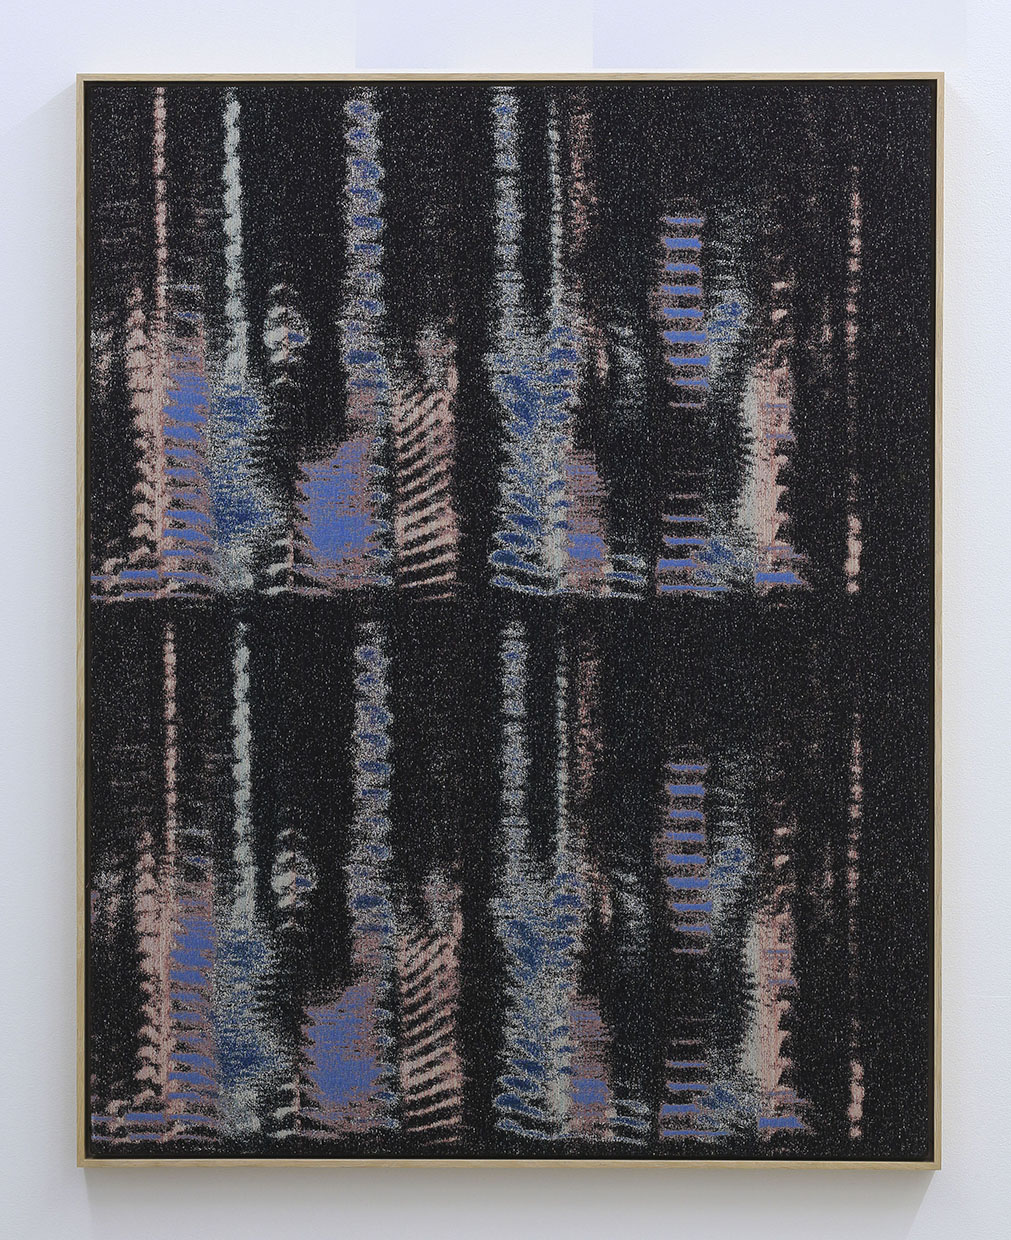 Mika Tajima, Negative Entropy (Kazue Kobata, Blue, Double), 2015, cotton, polyester, rayon, wood, wool, acoustic baffling felt, 54 x 42 inches